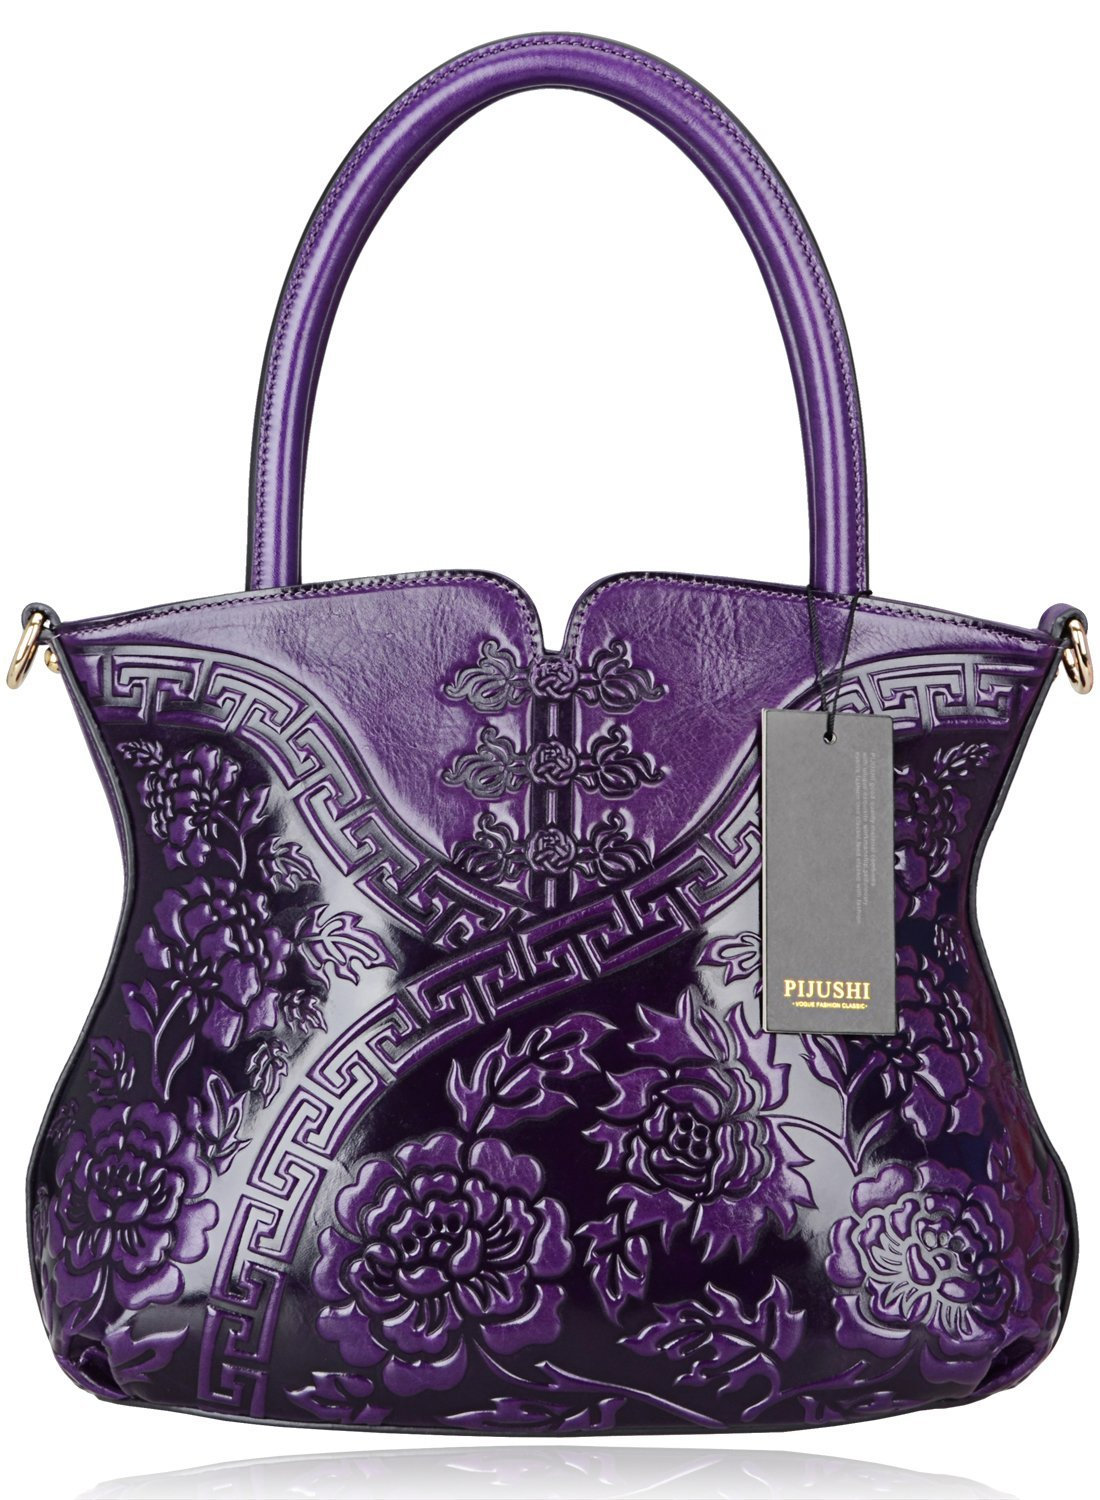 PIJUSHI Designer Flower Handbag Womens Top Handle Shoulder Satchel Bag Holiday Gift ( 22331 Violet)